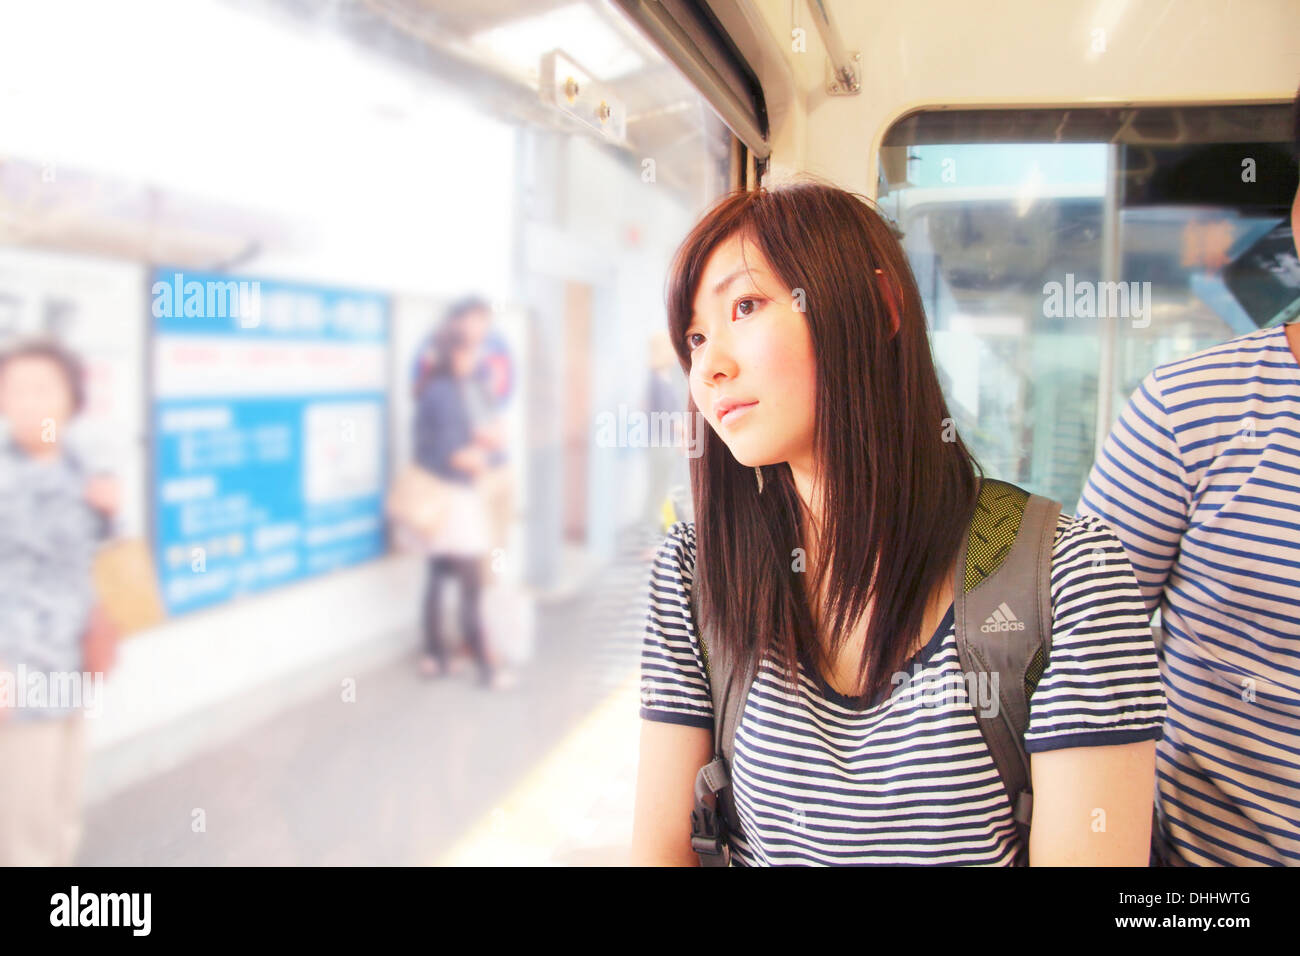 Young woman on train, looking through window - Stock Image